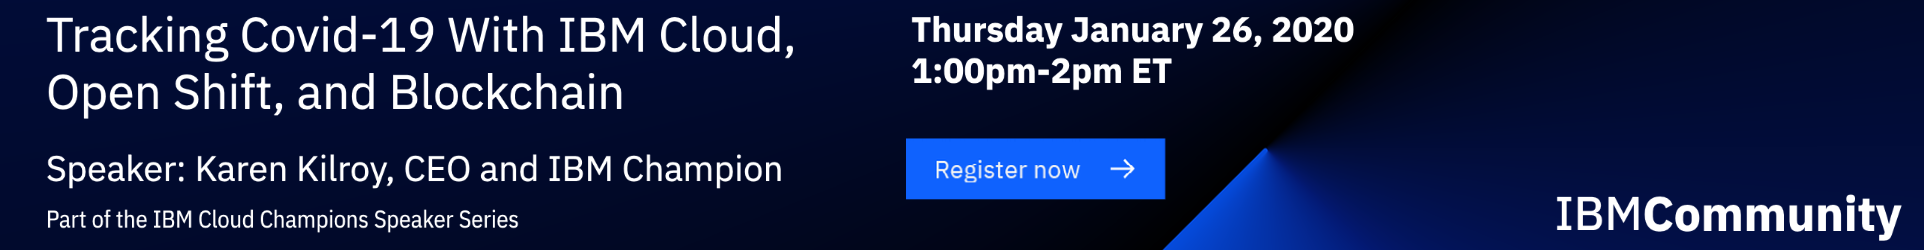 Tracking Covid-19 With IBM Cloud webinar registration banner January 26, 2021